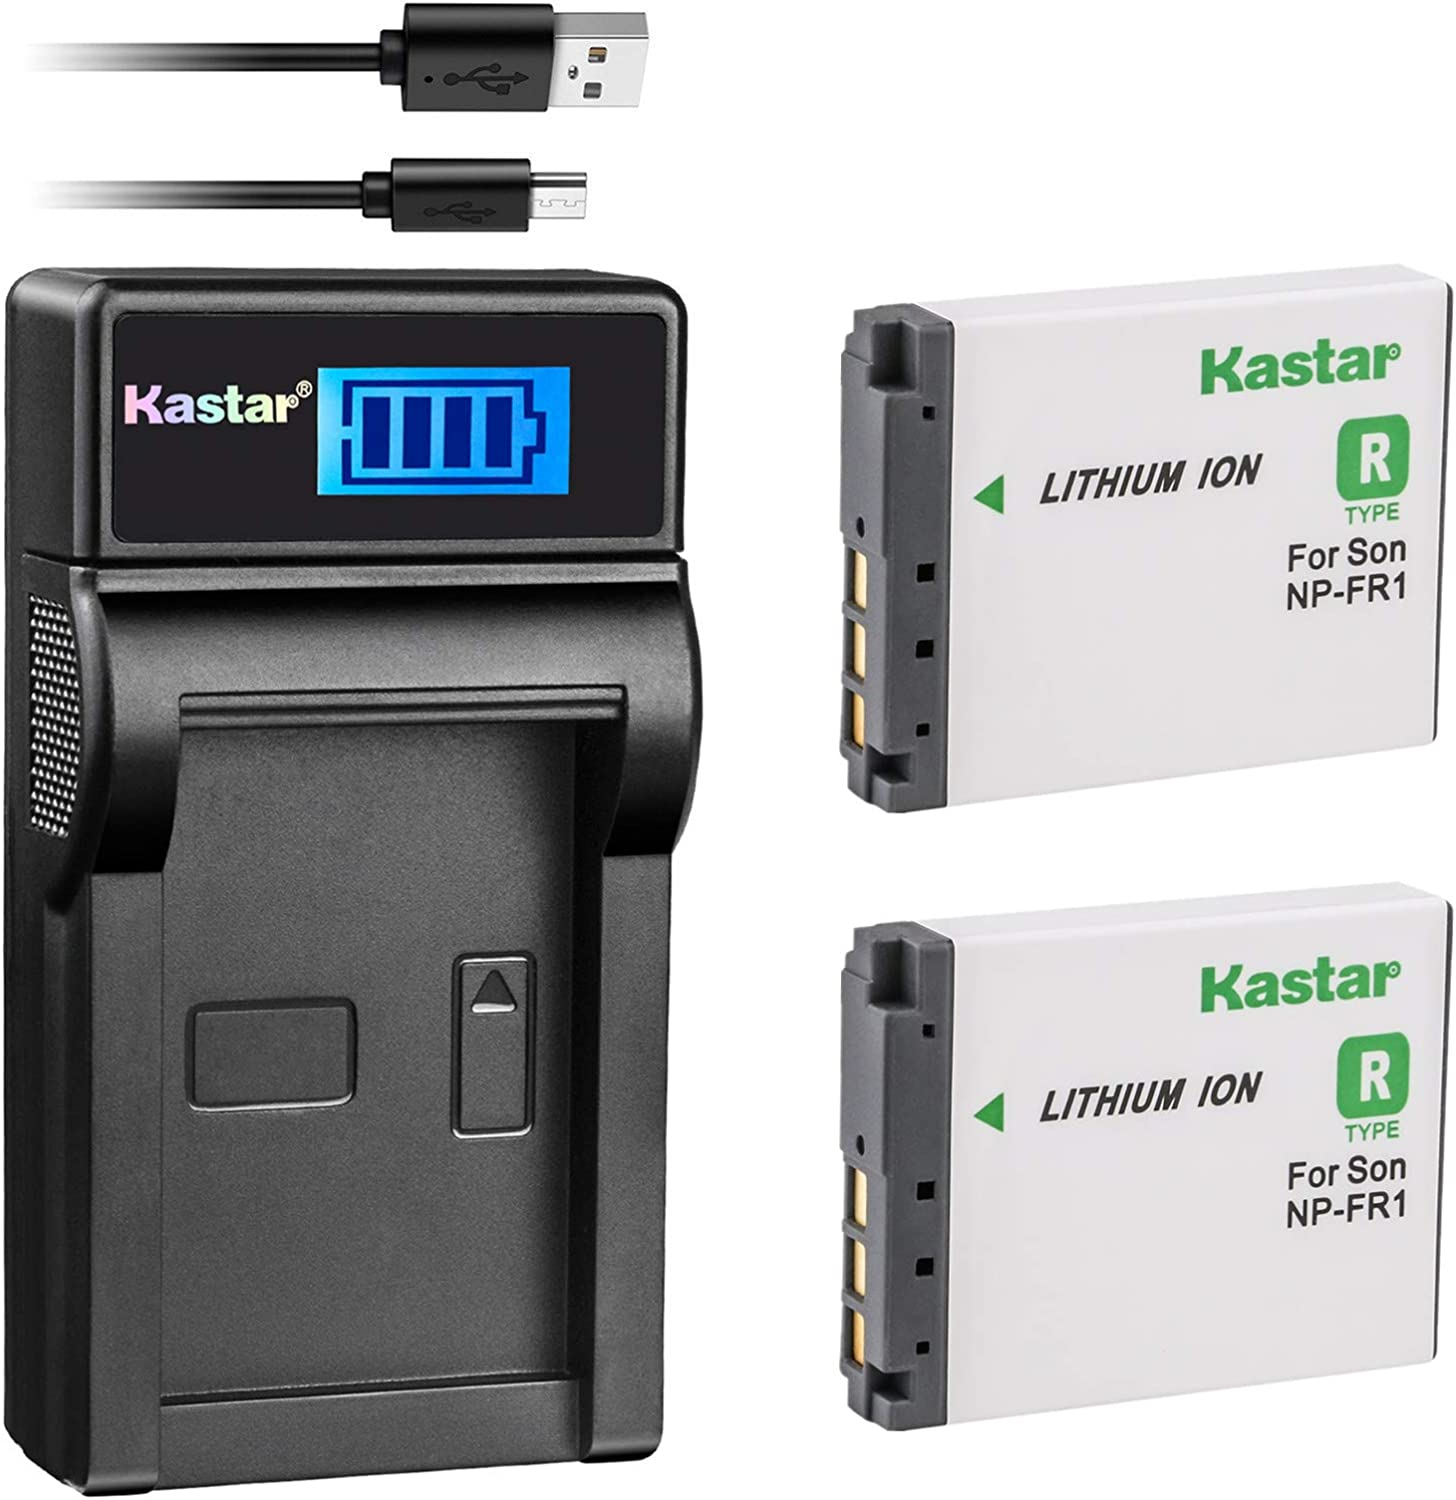 Kastar Battery X2 LCD USB Charger NEW before selling ☆ NP-FR1 Sony 2021 new BC-TR1 T for